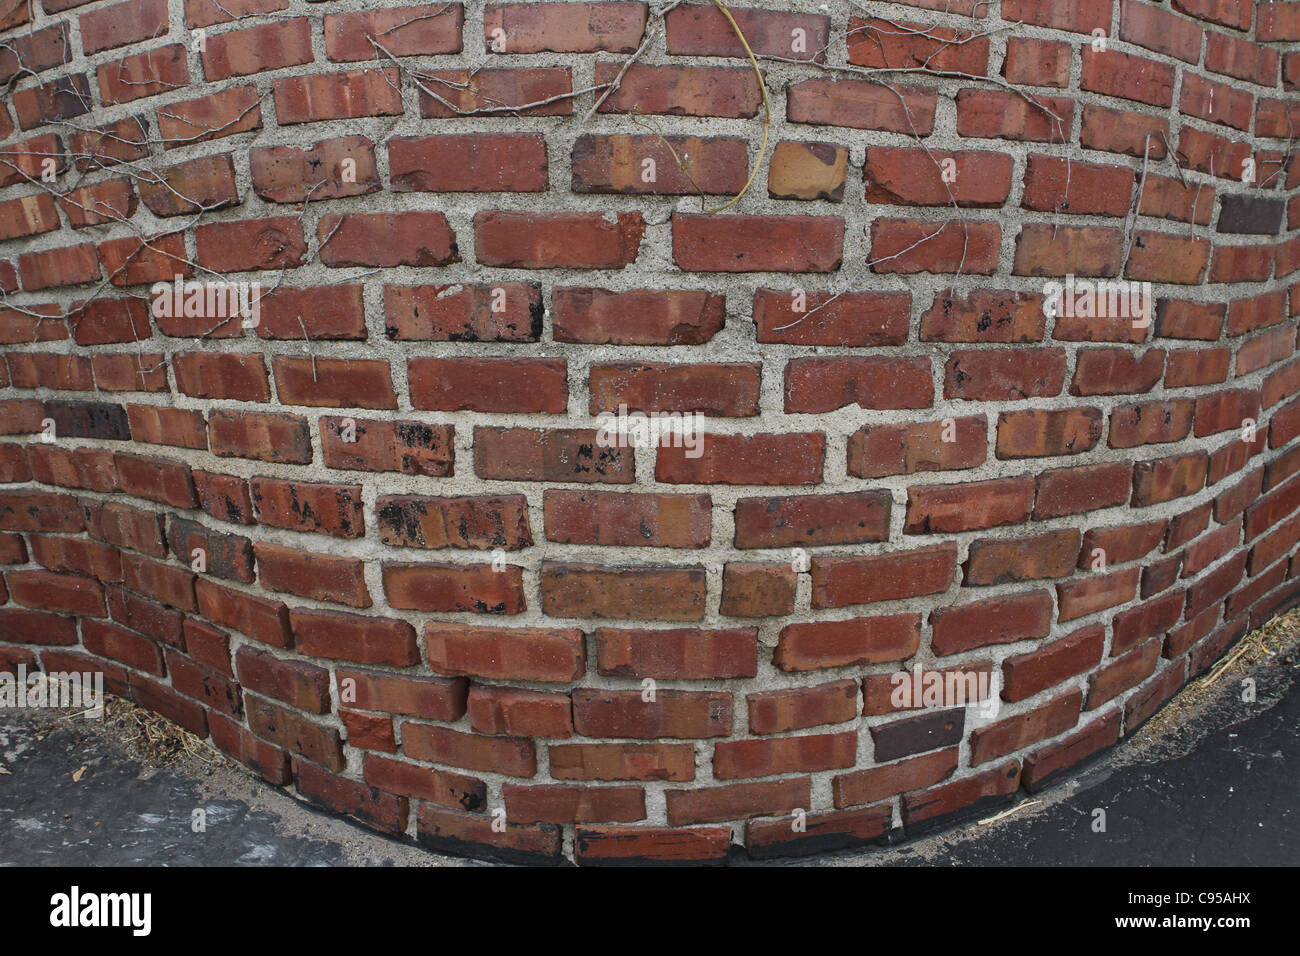 A warped looking brick wall. Stock Photo